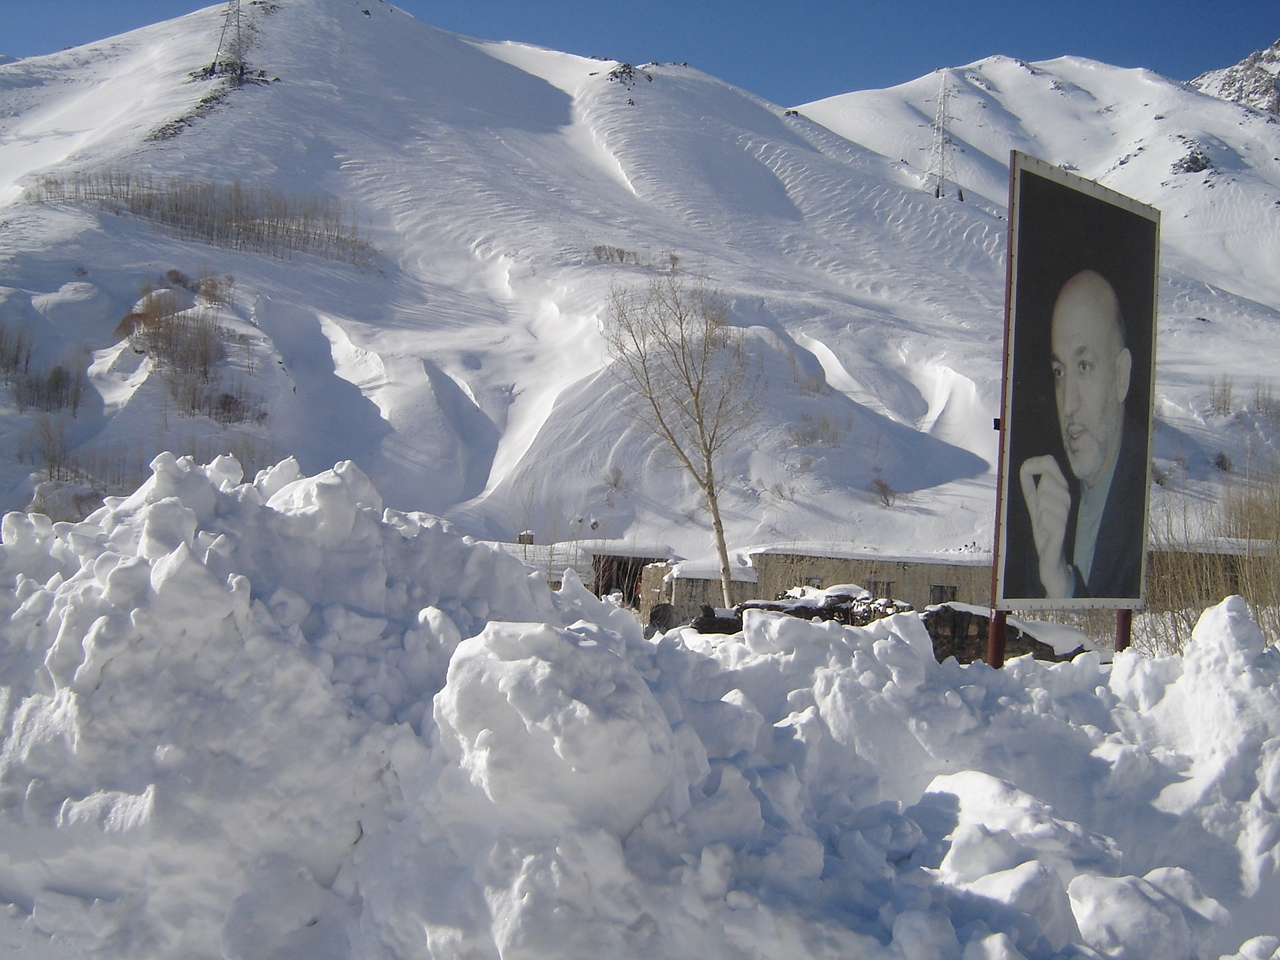 Heavy snows often block access to different parts of Afghanistan and impede medical and food aid delivery